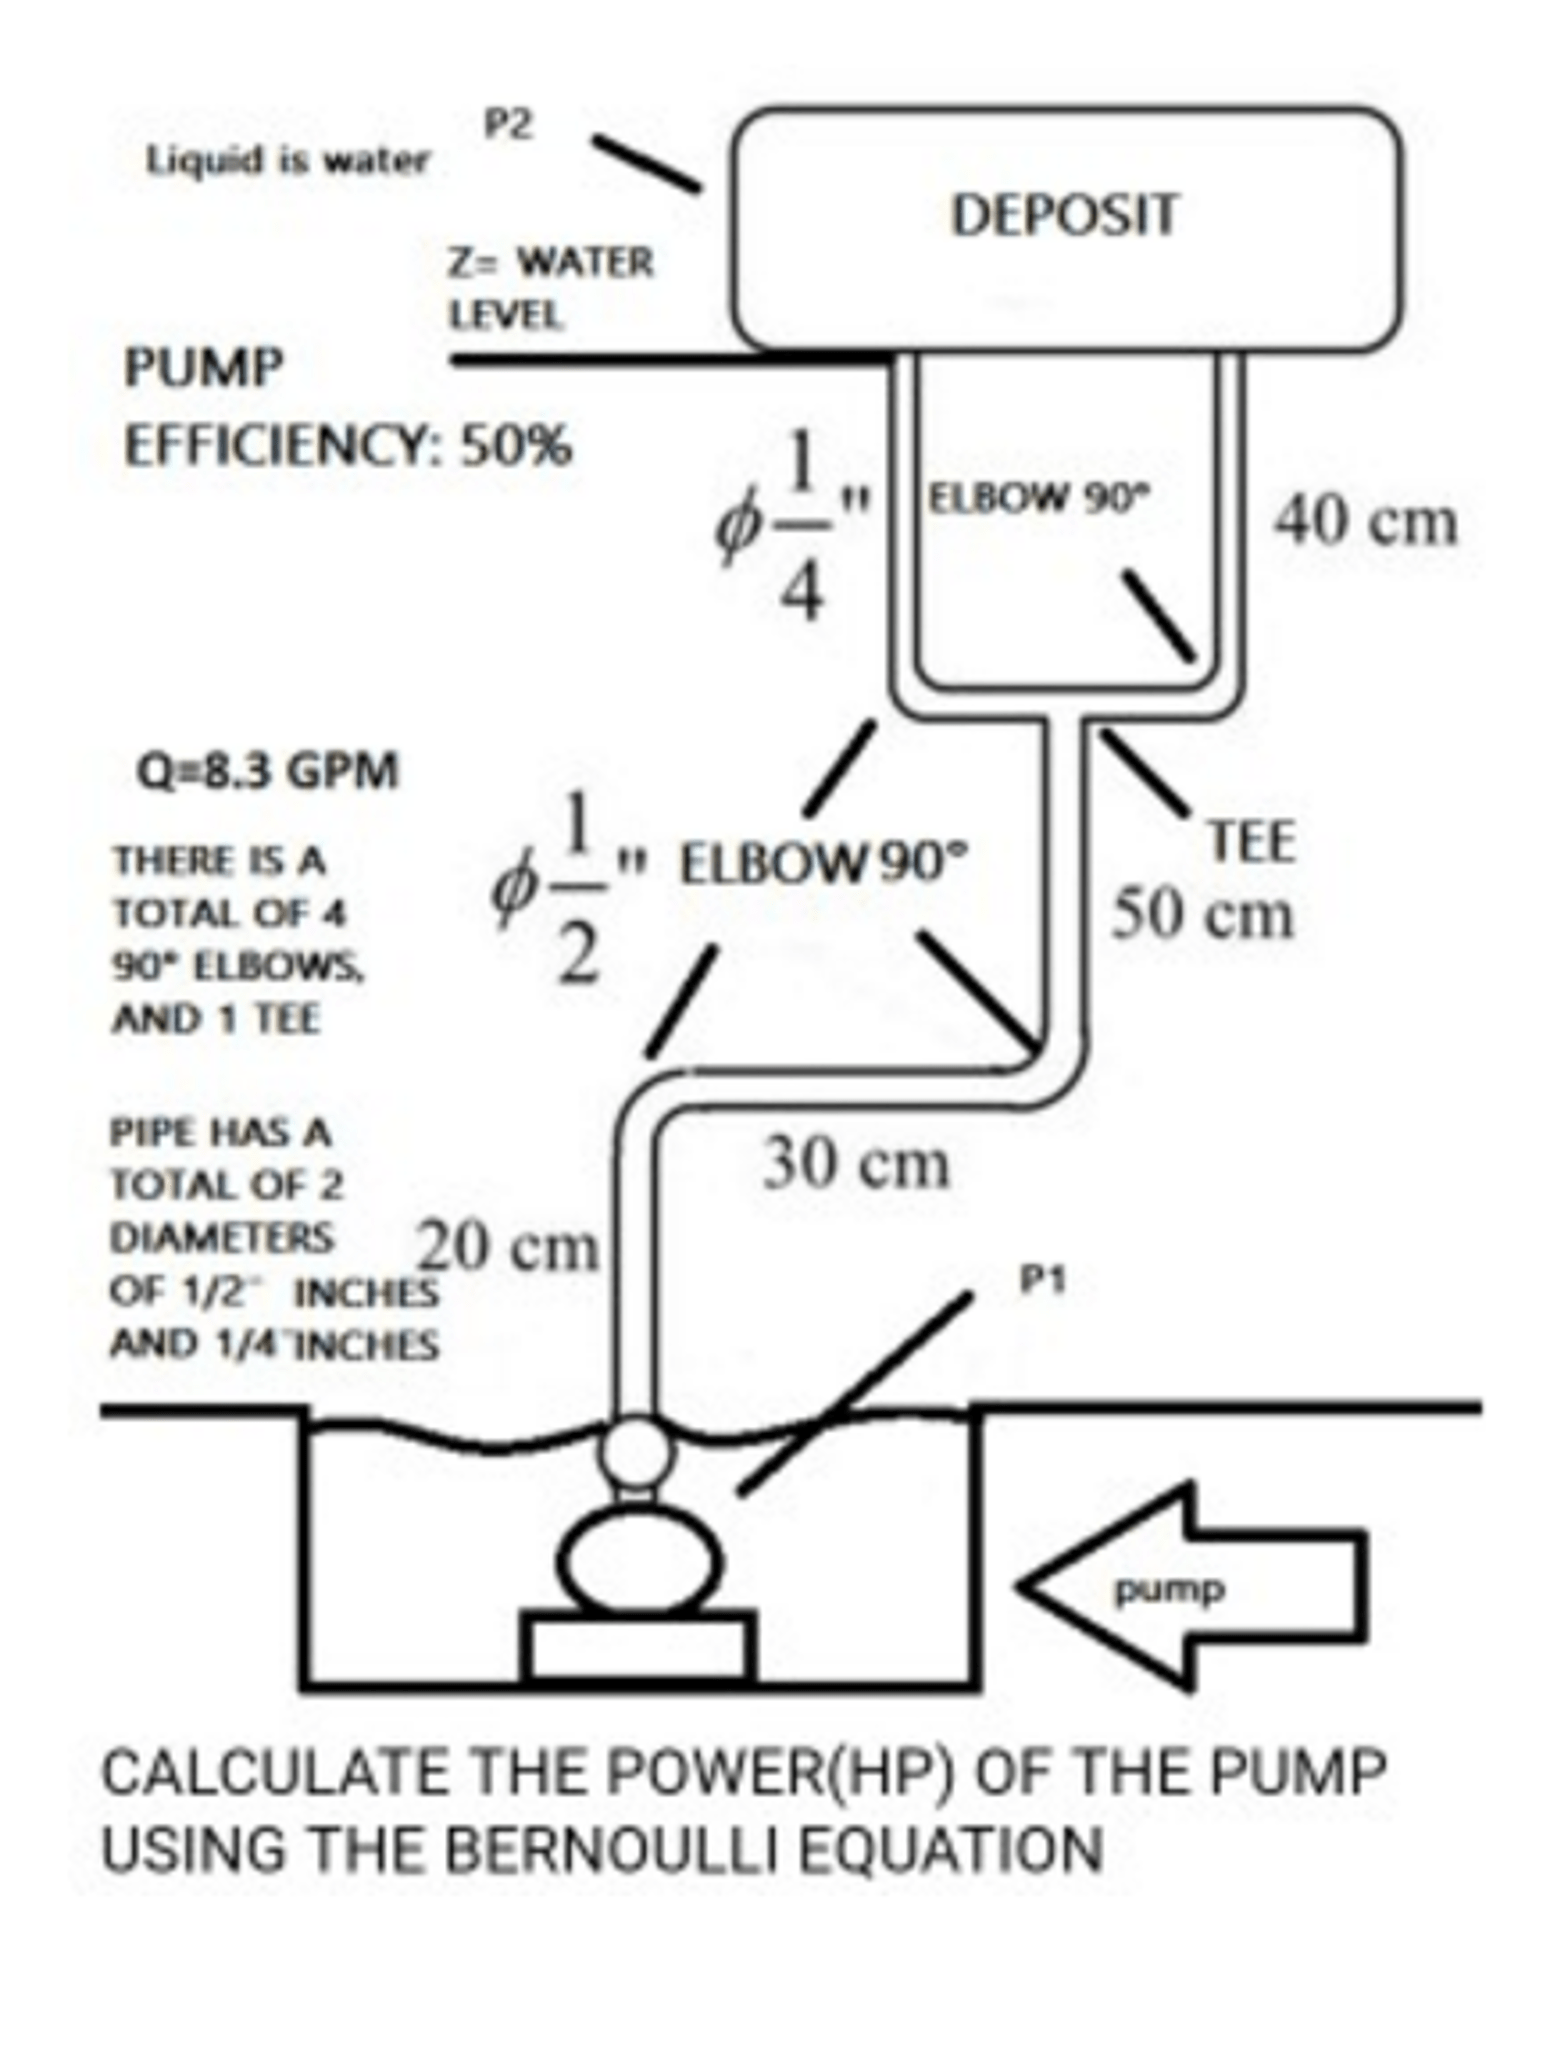 Solved: Calculate The Power(HP) Of The Pump Using The Bern